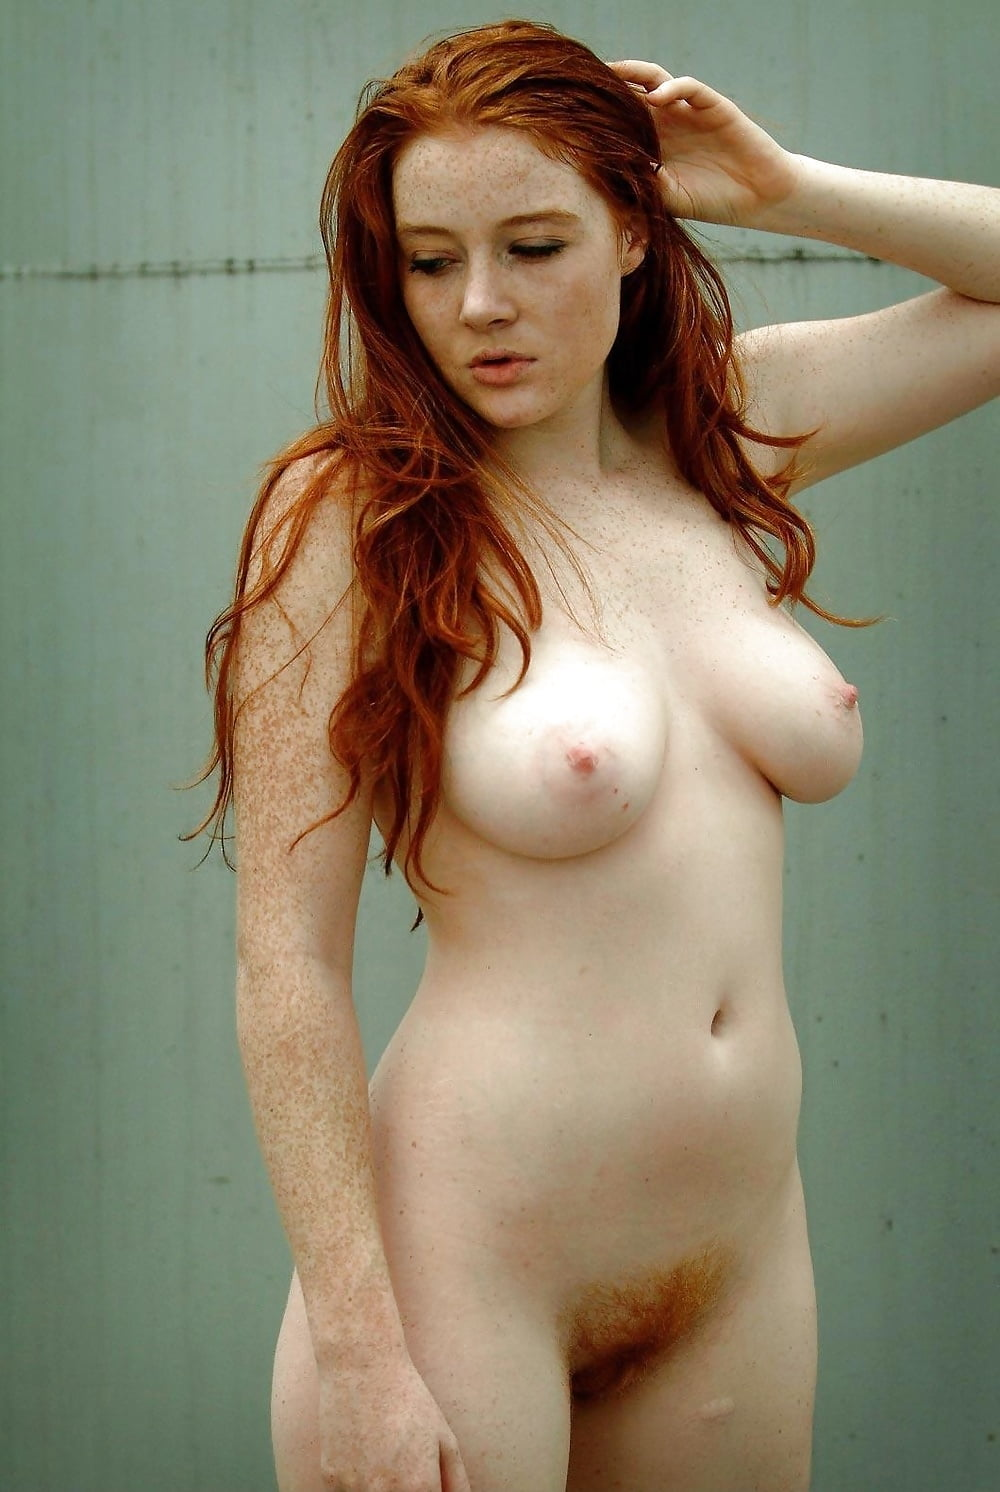 Nude redhead naked galleries — photo 15